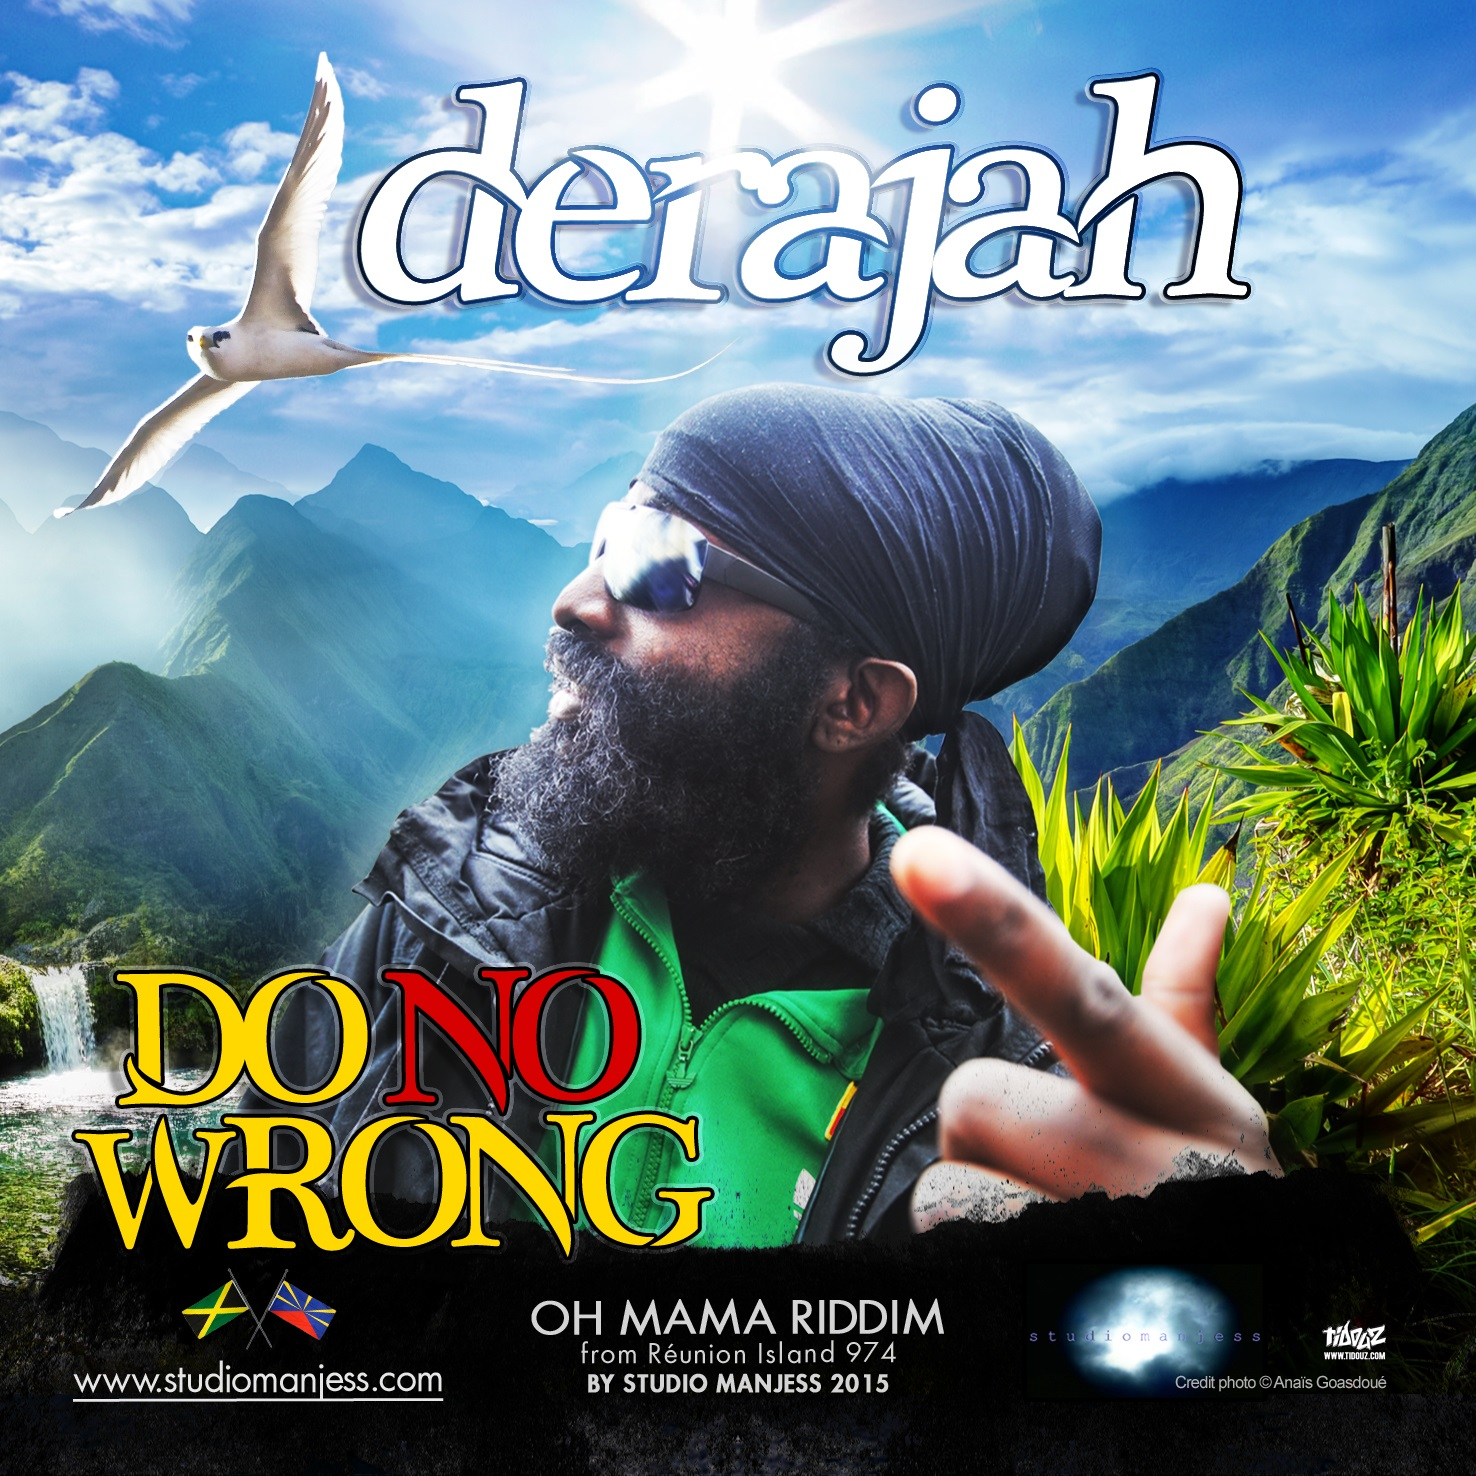 Front derajah do no wrong studio manjess 2015 1 by studiomanjess